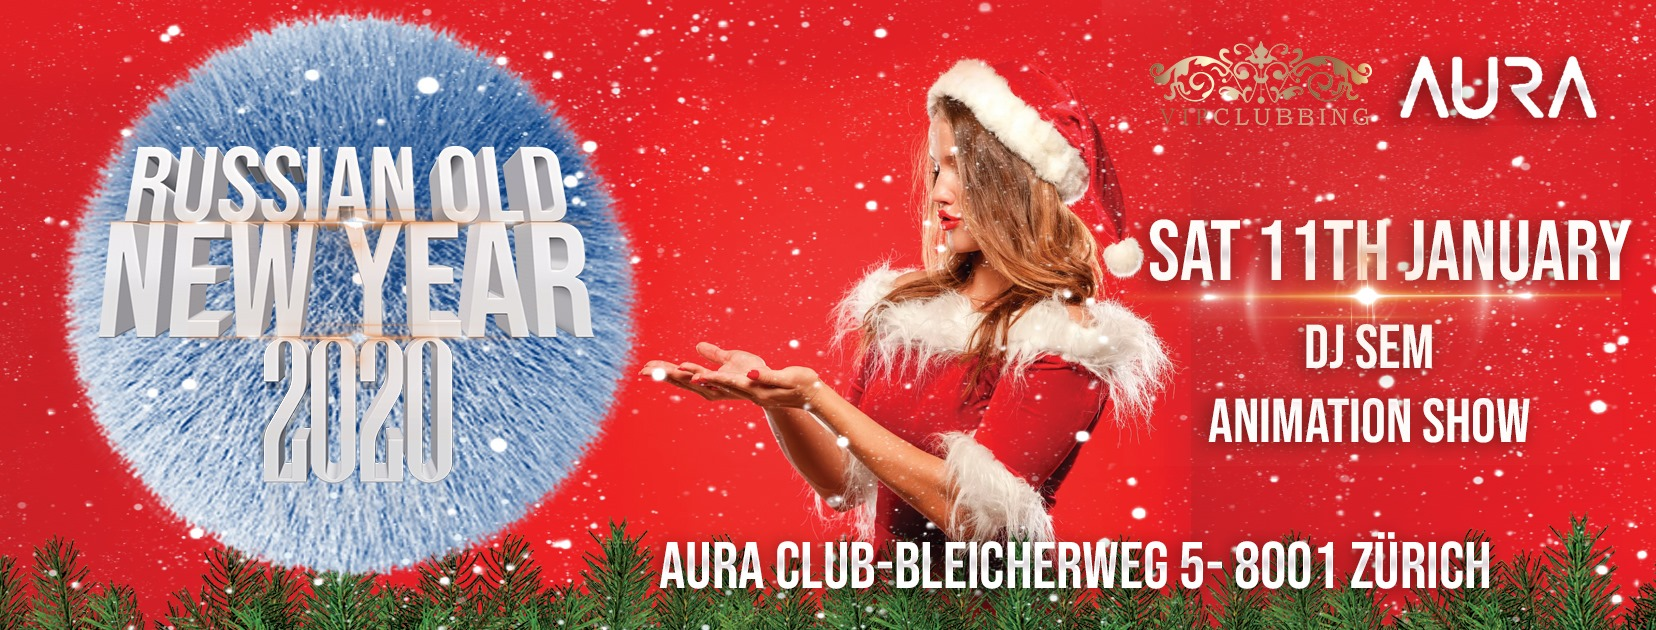 Illustration. Zürich. Vita Li en VIP Clubbing. Russian old New Year 2020. 2020-01-11